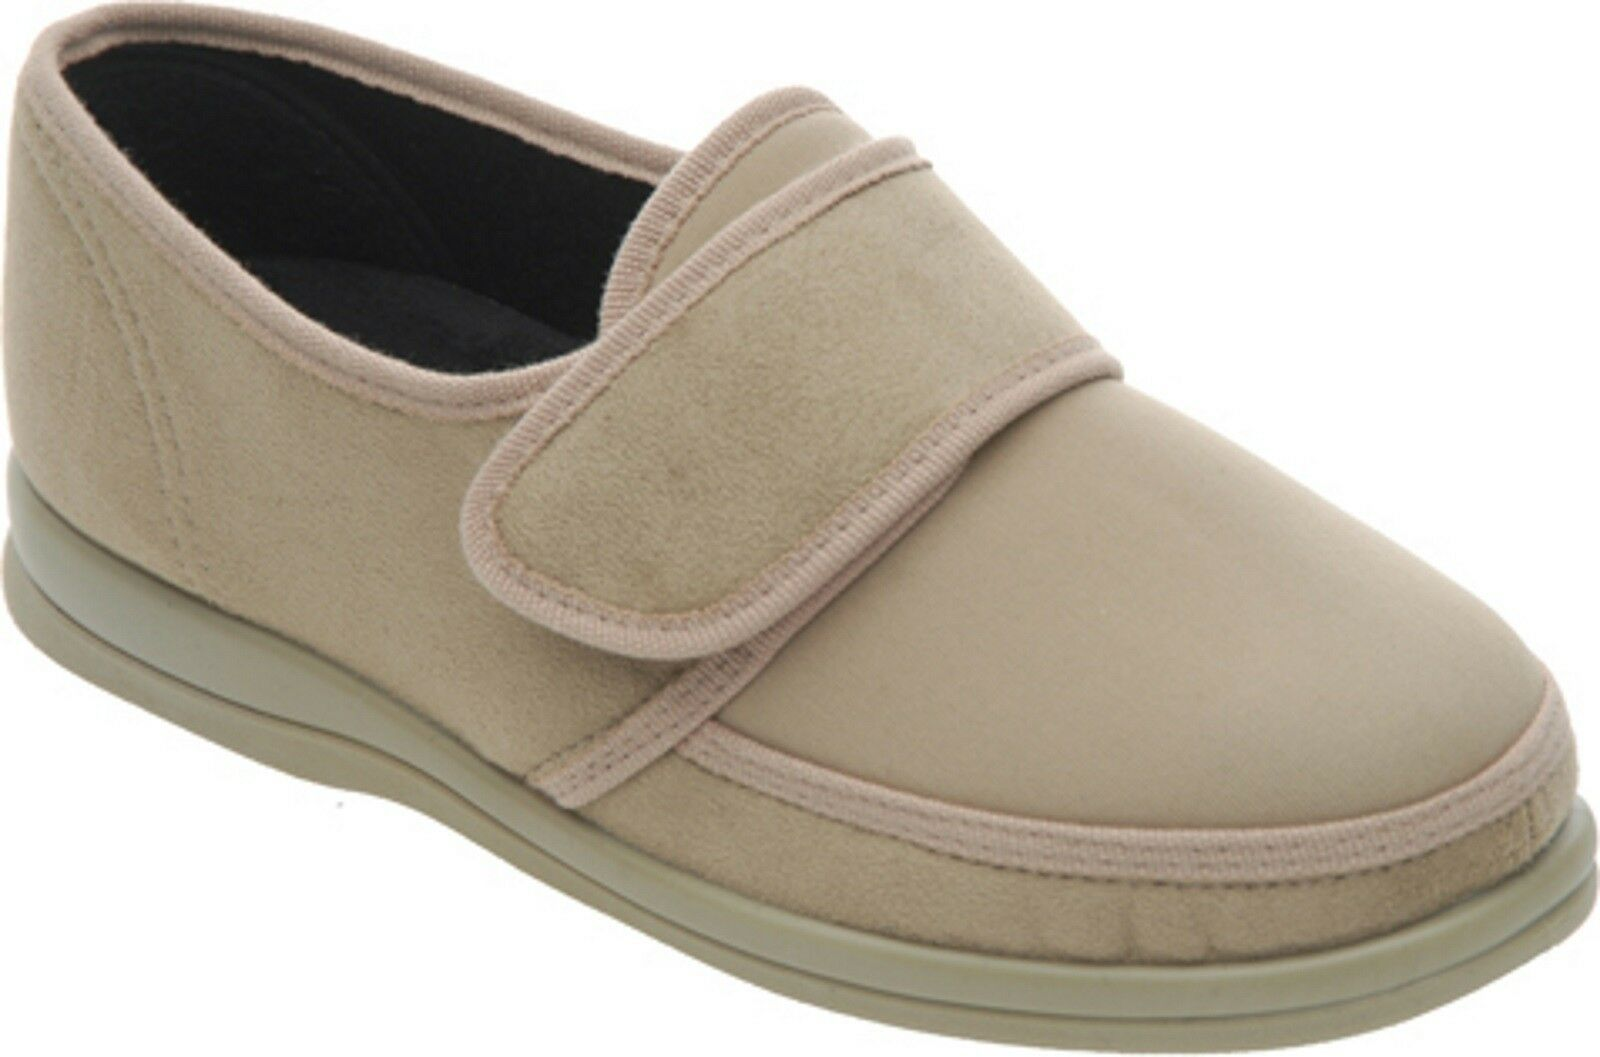 Cosyfeet Extra Roomy Spice shoes Neutral Womens UK 3 6E Fitting